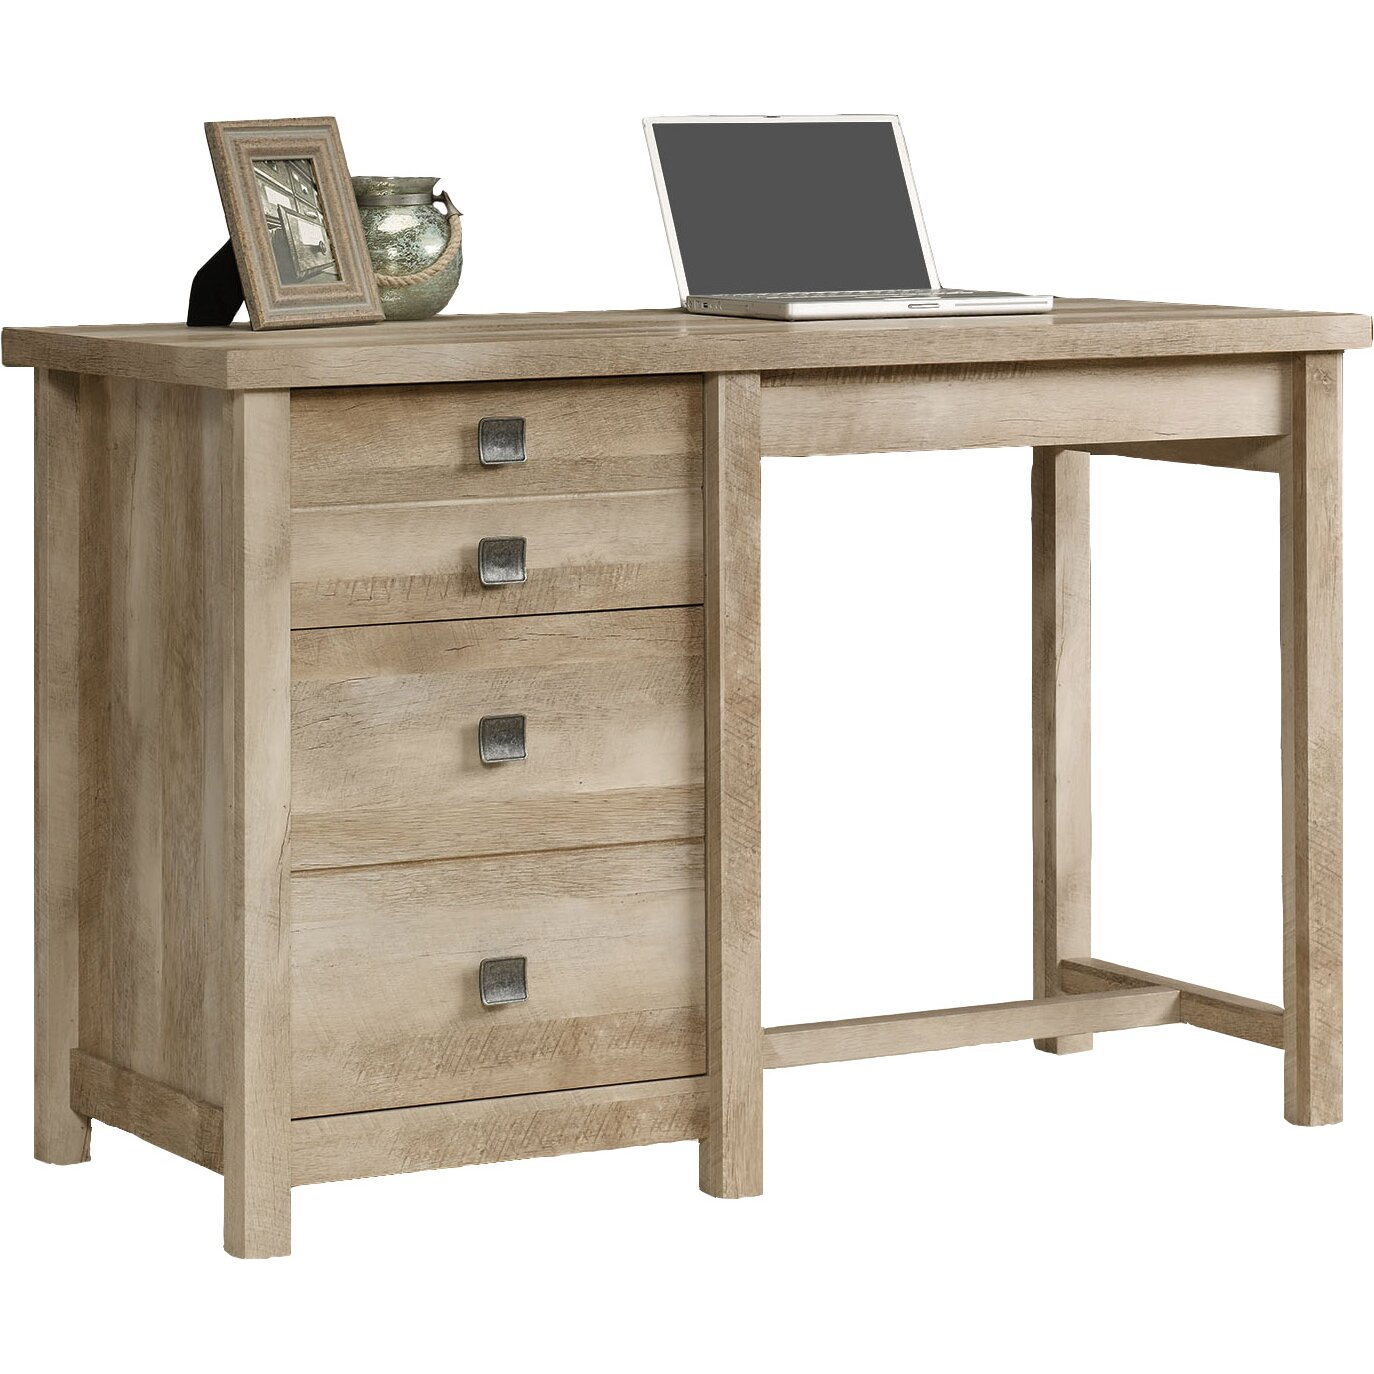 Loon peak sunlight spire writing desk reviews wayfair Peak office furniture